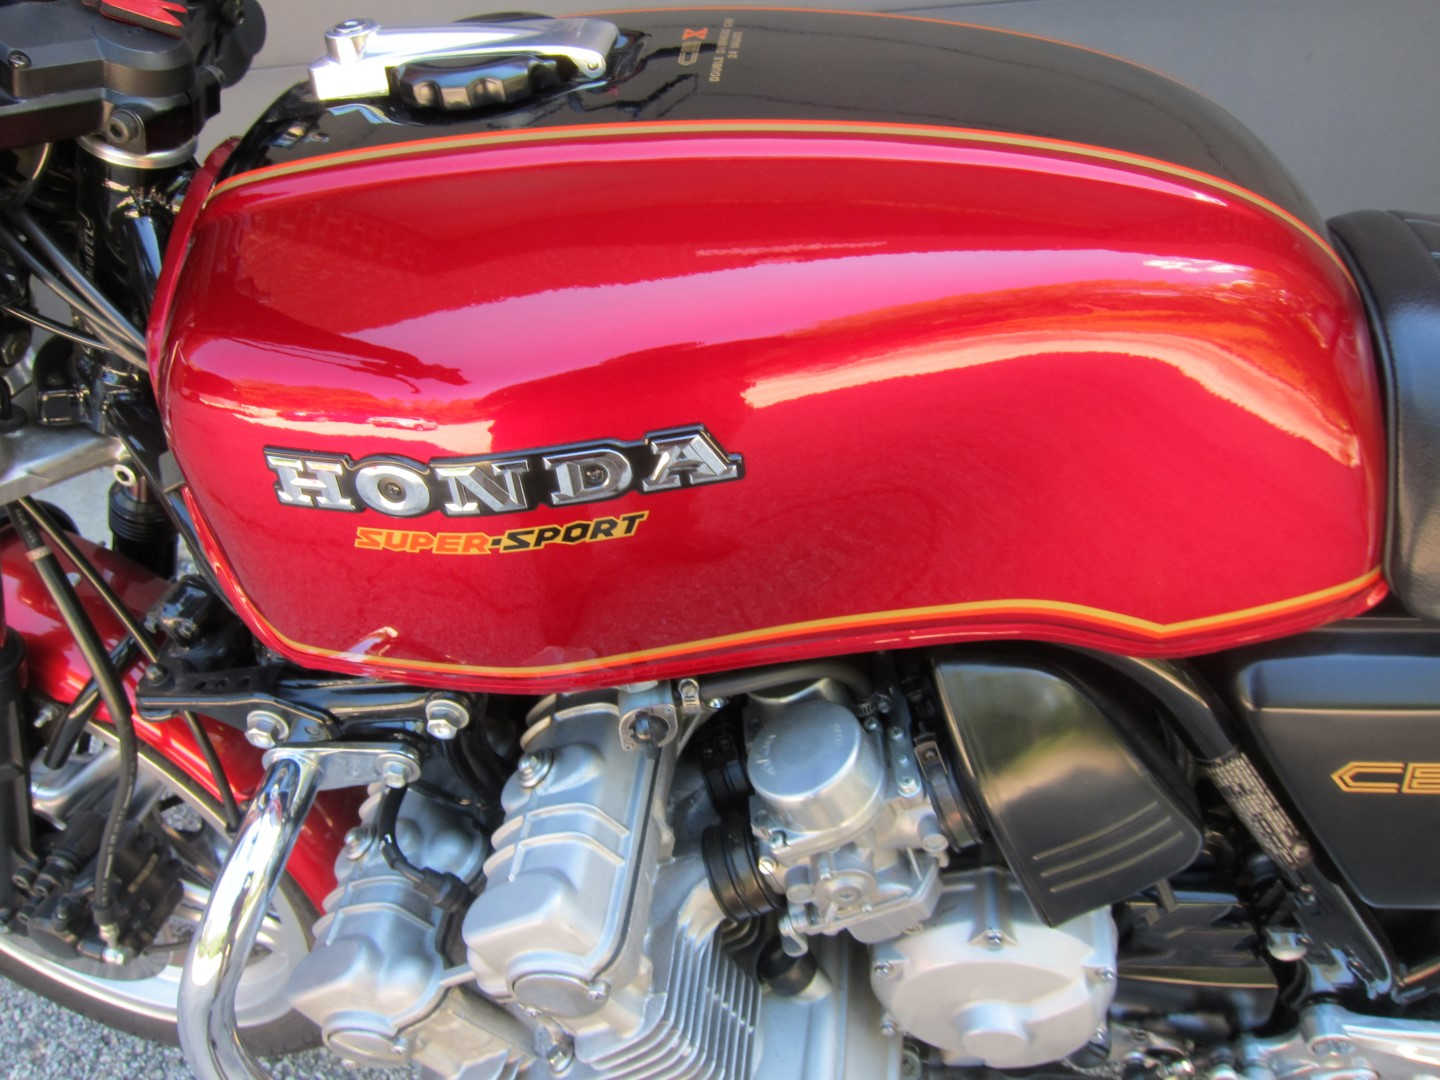 Six Cylinder Archives Rare Sportbikes For Sale 1970 Honda Motorcycle Vin Decoder The Owner Is Nearing 80 Years Old And Has Decided To Sell Off His Collection Of Italian Japanese Classic Bikes 1970s 1980s